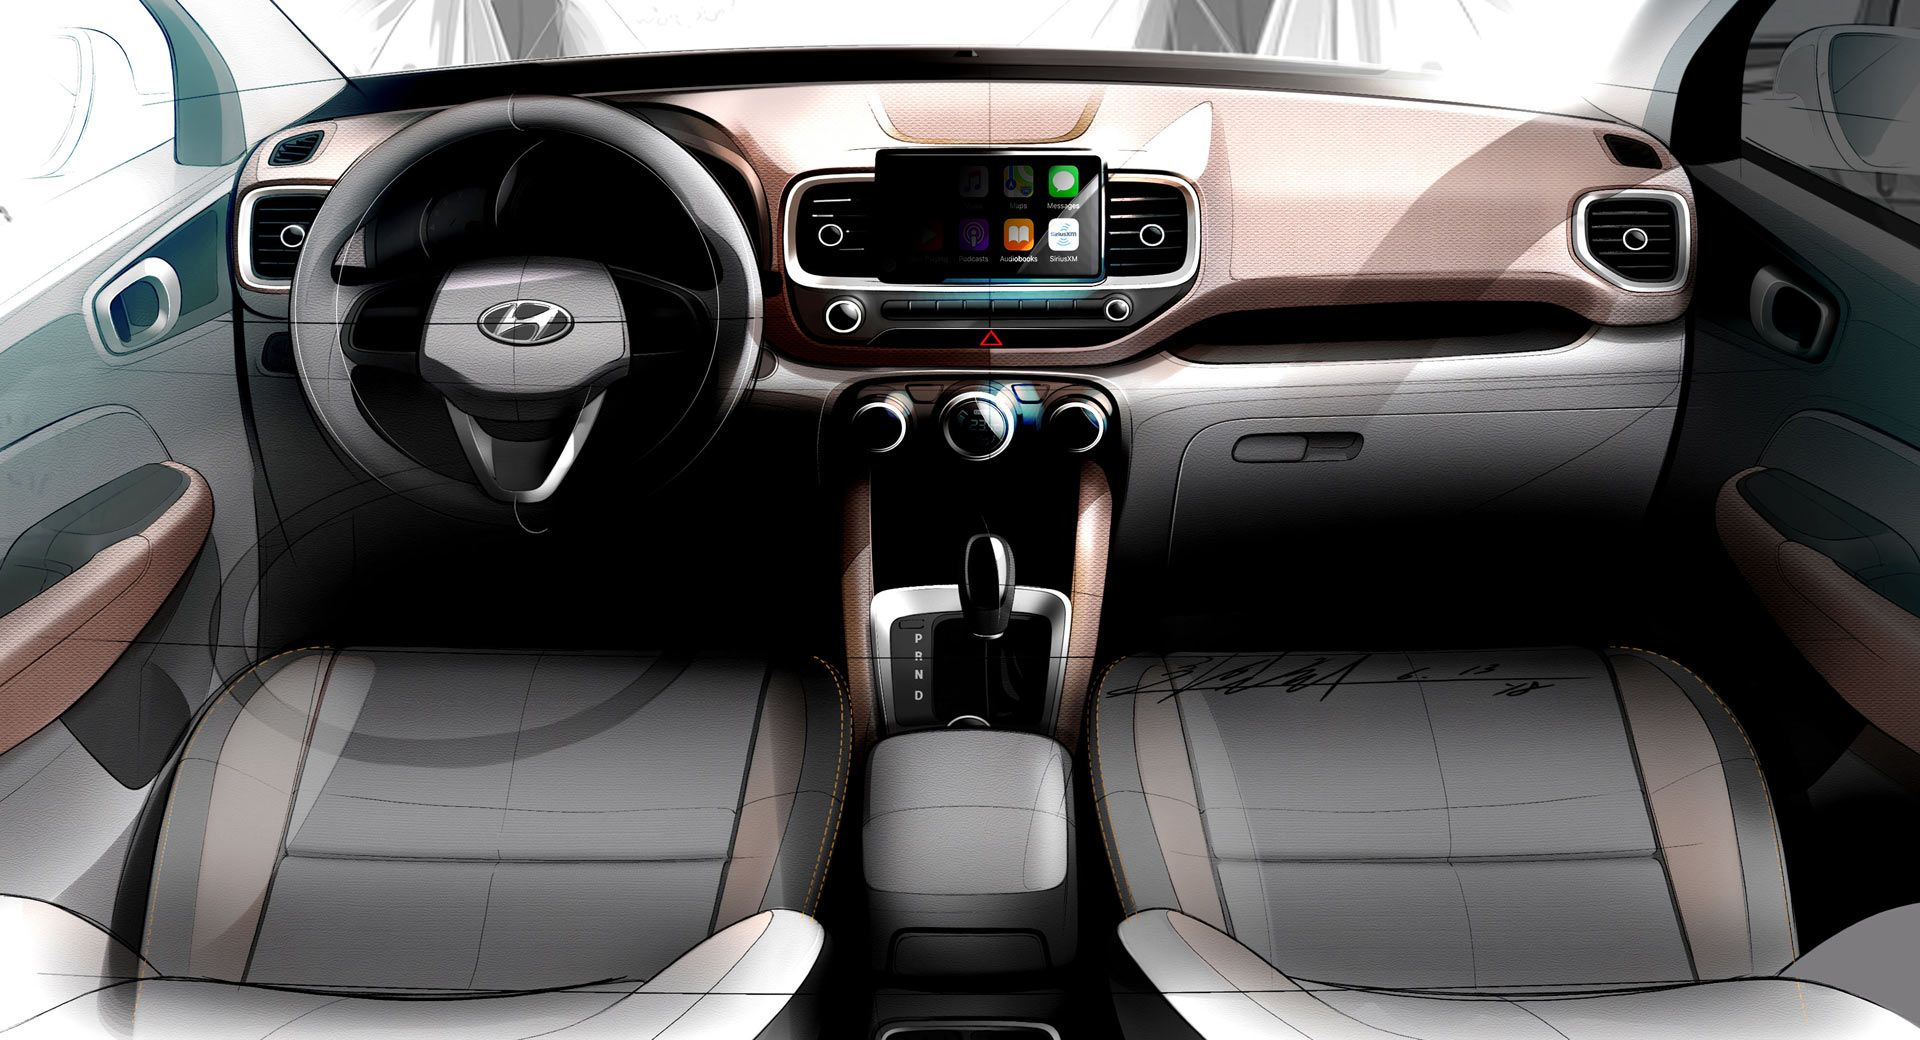 Hyundai Releases Venue Suv Sketches Before April 17 Debut With